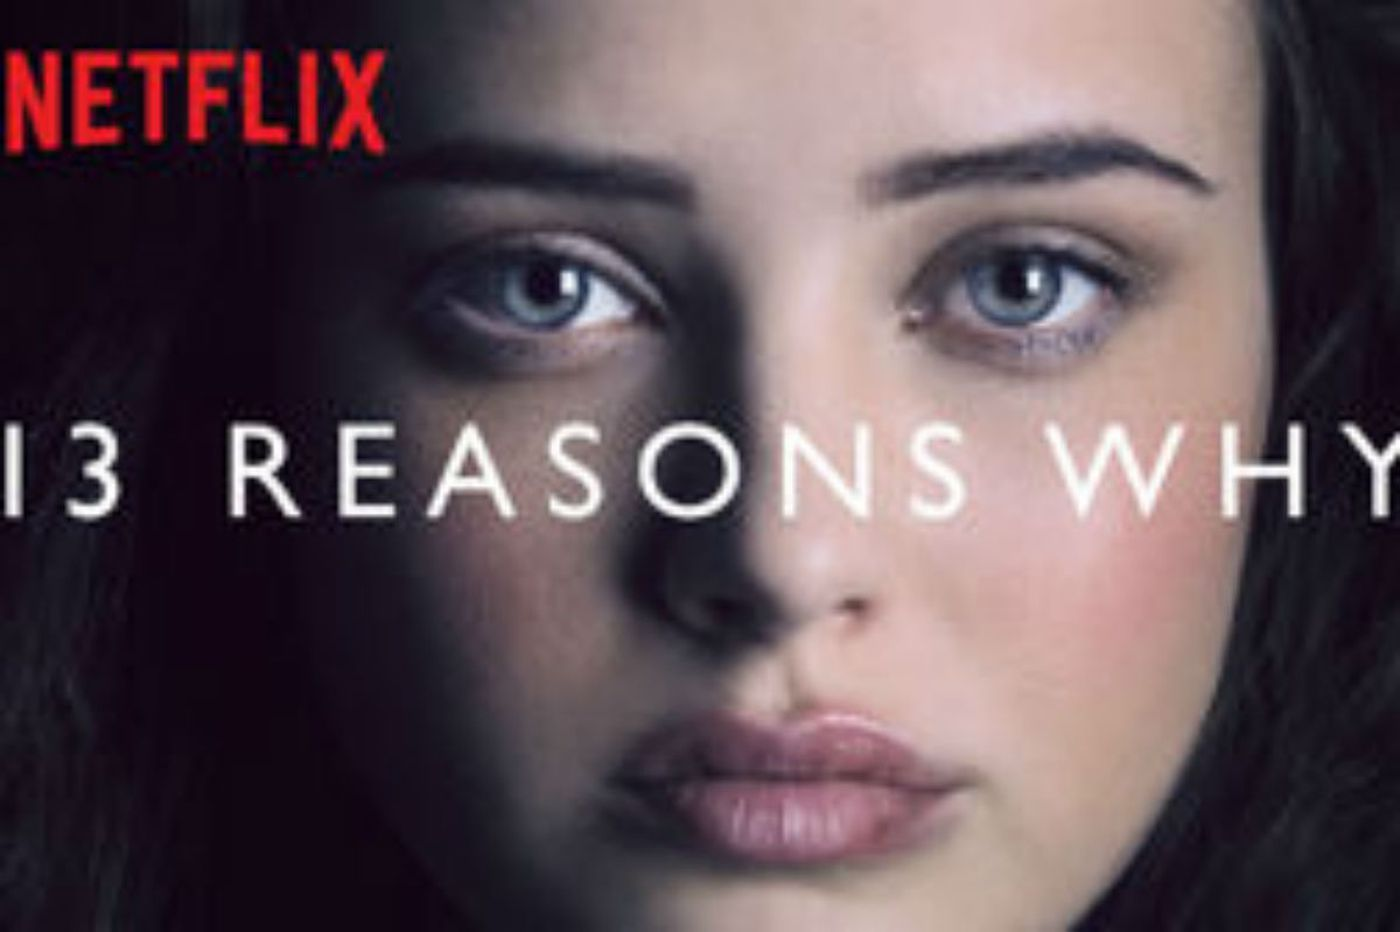 Schools warn parents about Netflix teen suicide series, '13 Reasons Why'